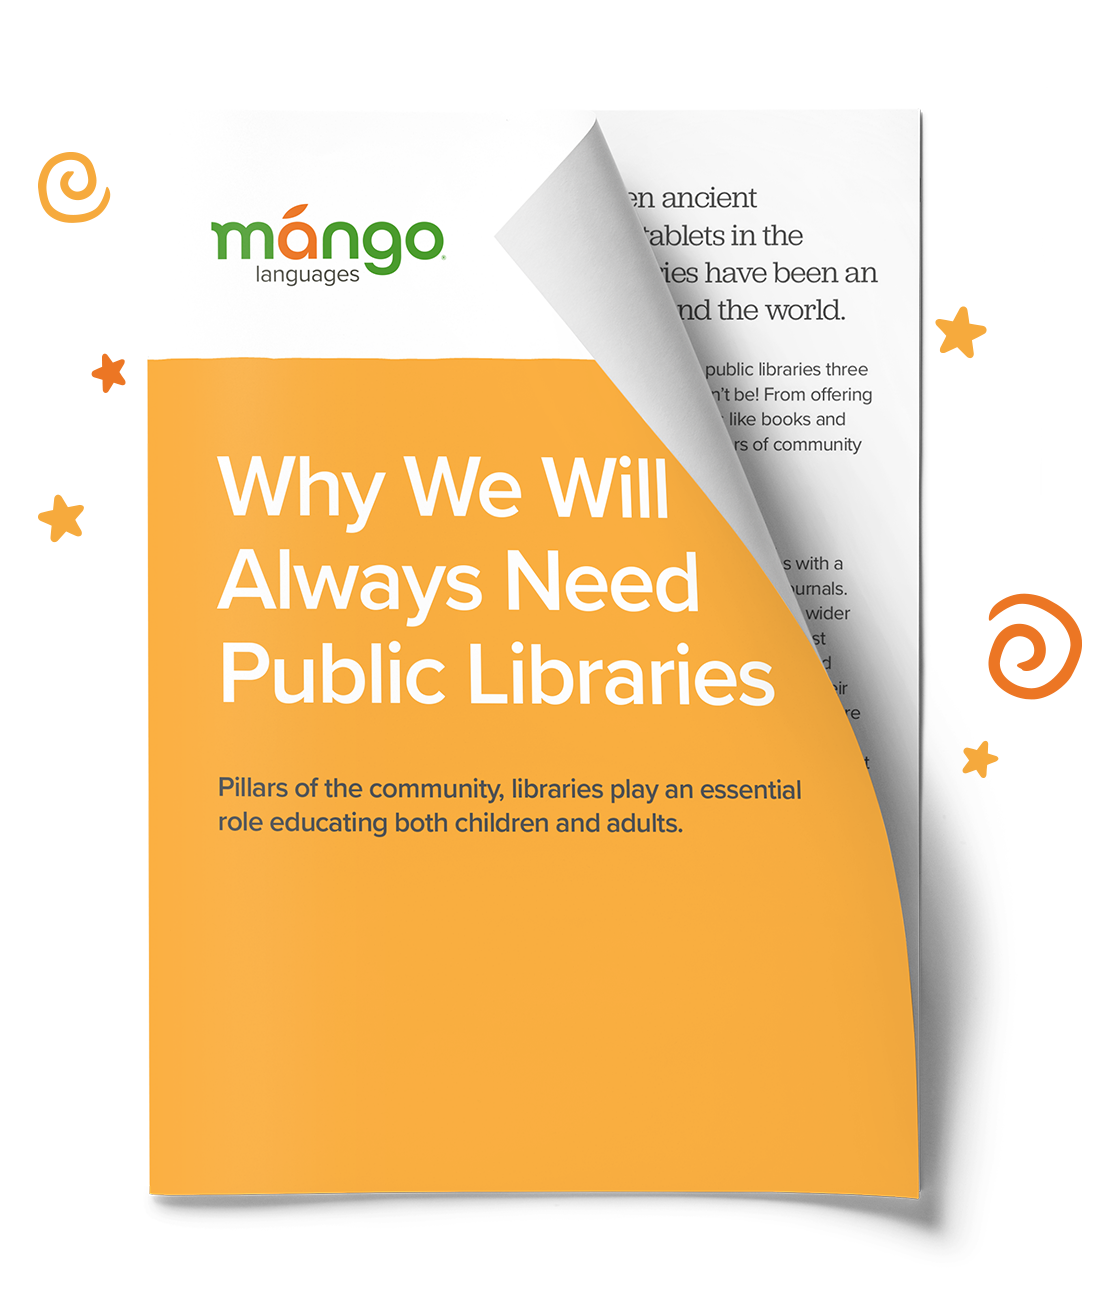 mango-inbound-why-we-need-public-libraries